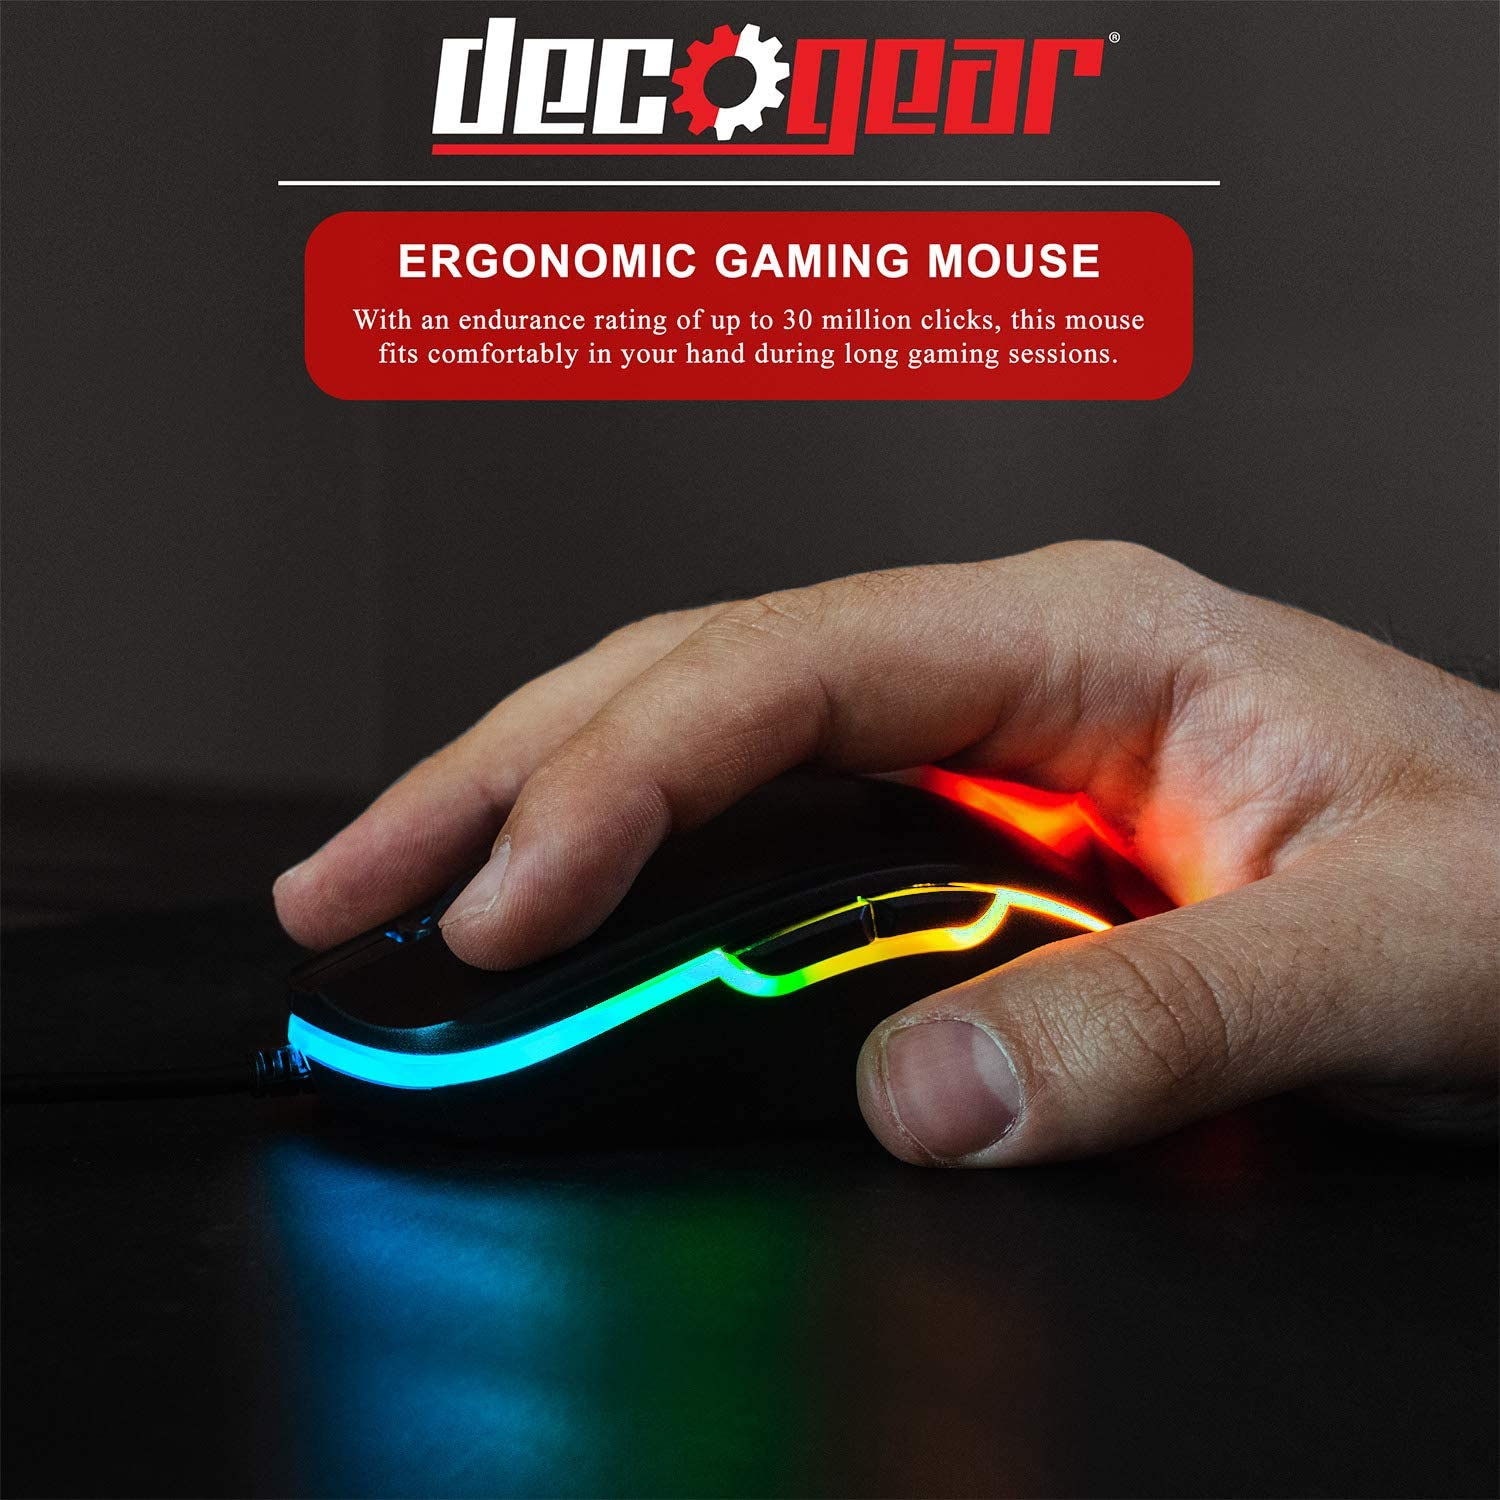 6 Buttons High Precision Optical Mouse 800-5000 Adjustable DPI Ergonomic for All Gaming Grips Deco Gear Wired Gaming Mouse 11 RGB Backlit Modes